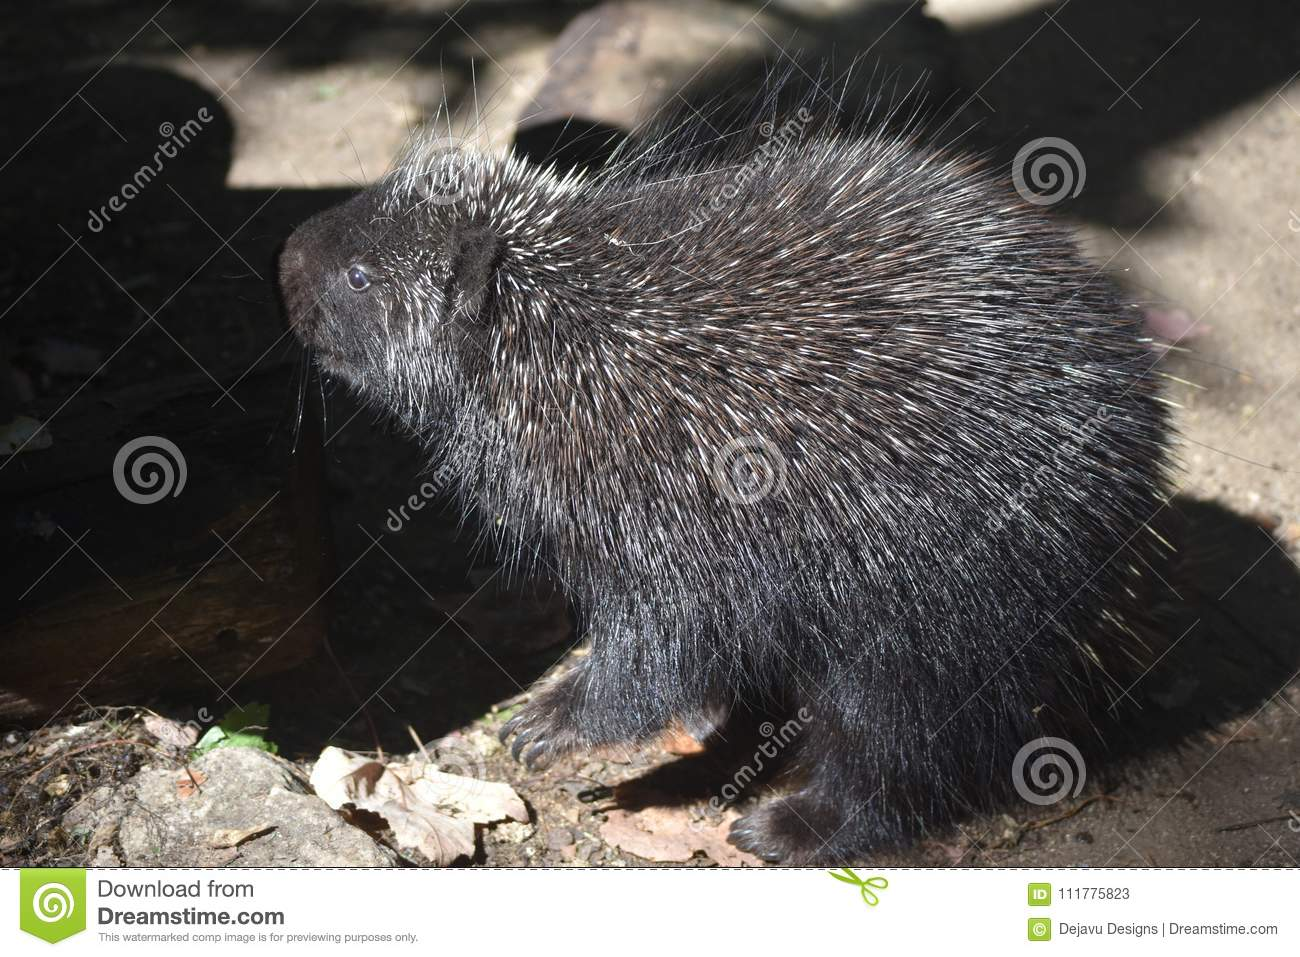 Cute american porcupine with white tipped quills